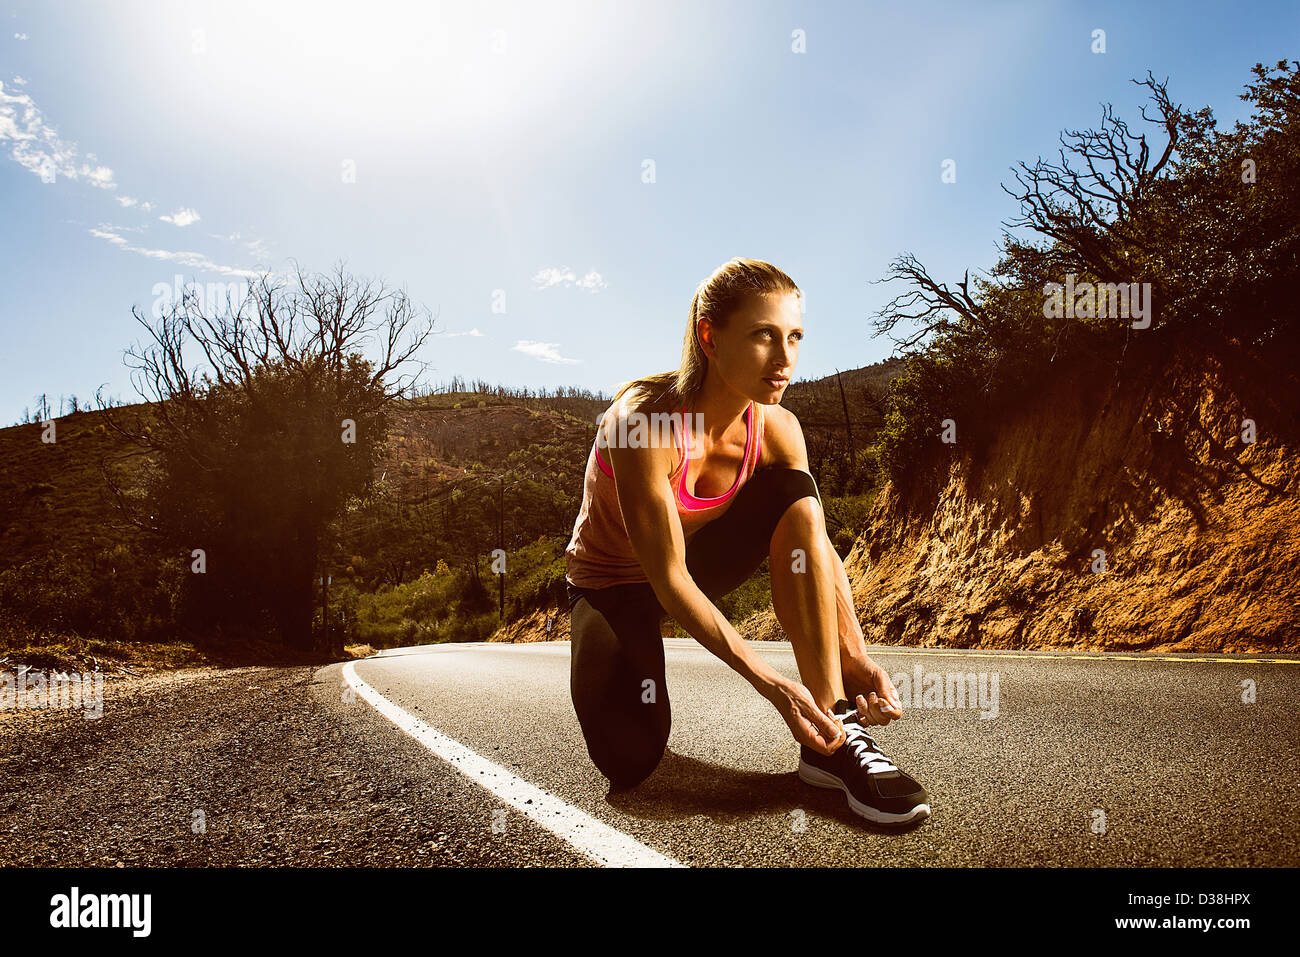 Runner lacing up shoes on rural road - Stock Image